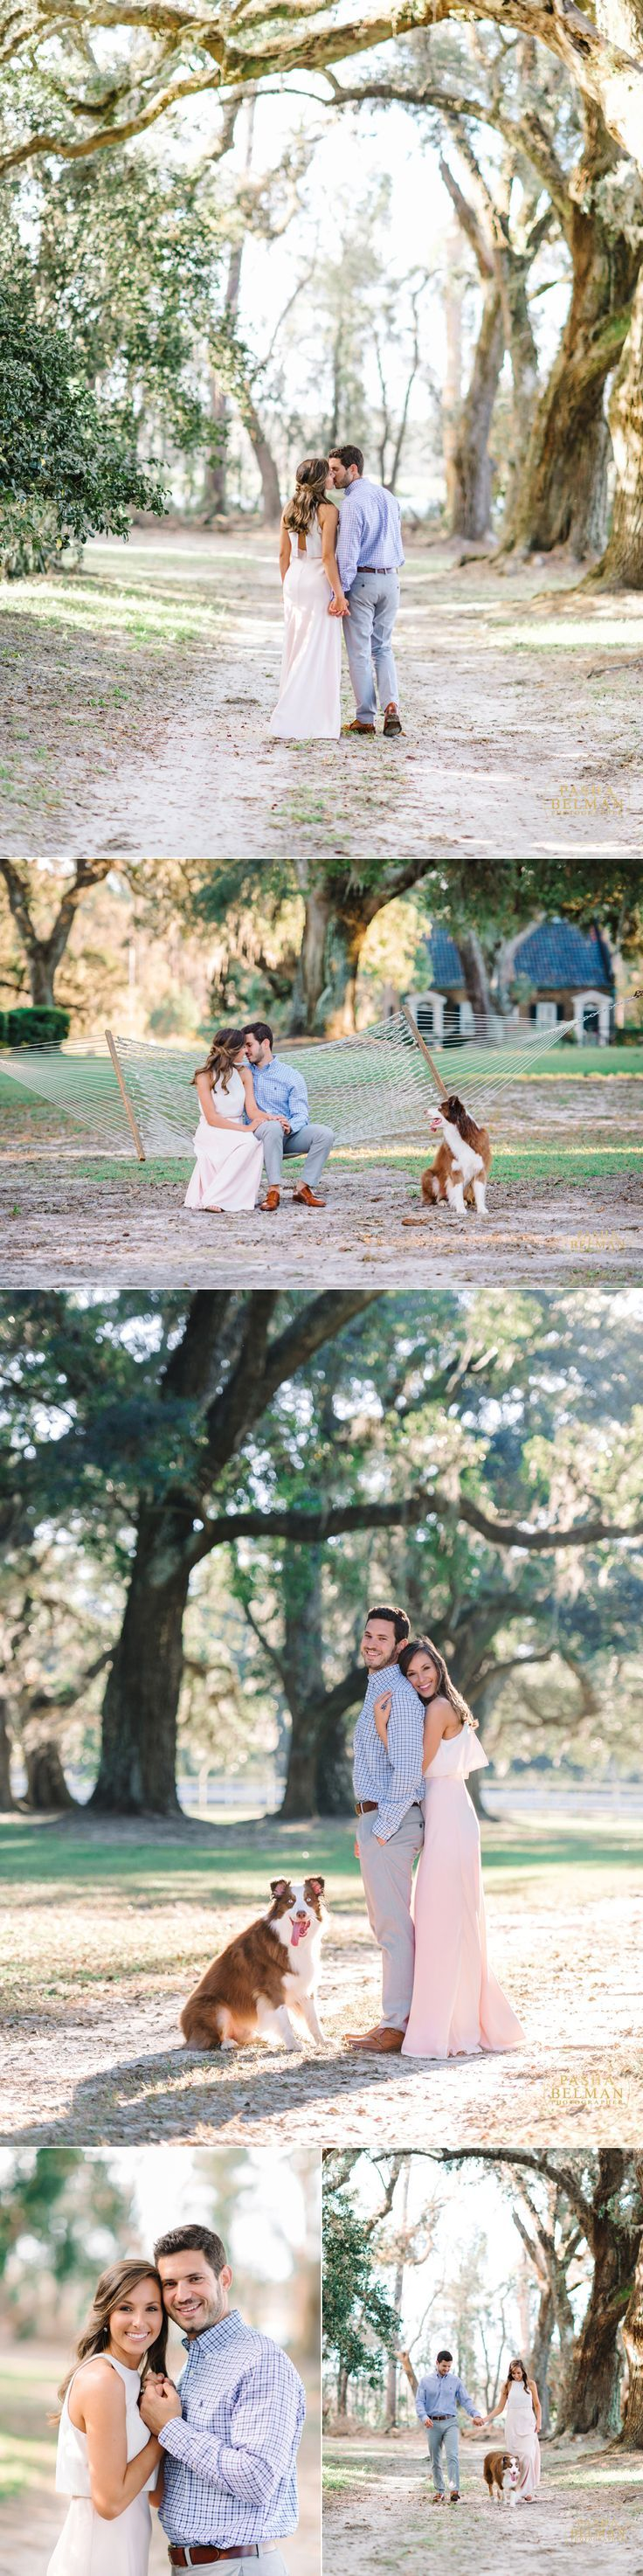 Mansfield Plantation | Live Oaks | Fine Art Film Inspired Photography | Engagement Photography | Charleston | Georgetown | Myrtle Beach | Engagement Photography Idea with Dogs | Film Inspired Engagement Photography | Spanish Moss Engagement Session  Best Engagement Shoot Poses, Favorite Poses for Engagement Shoots, Engagement Shoot Photo Inspiration in Charleston | Myrtle Beach | Wilmington | Columbia | South Carolina  Photographer: Pasha Belman Photography